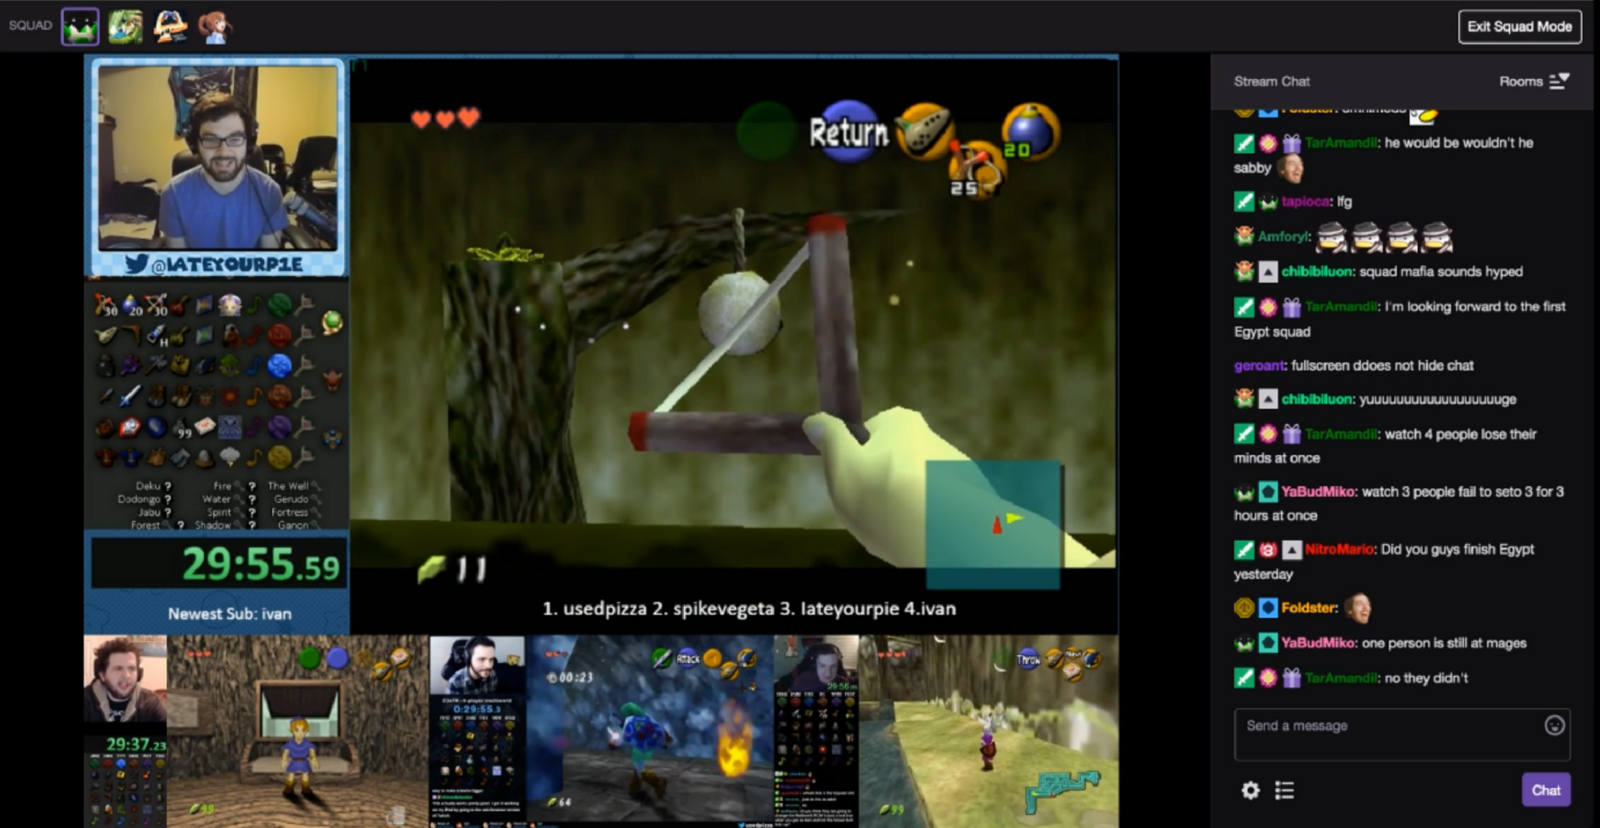 Twitch launches a four-person 'Squad Stream' feature to help